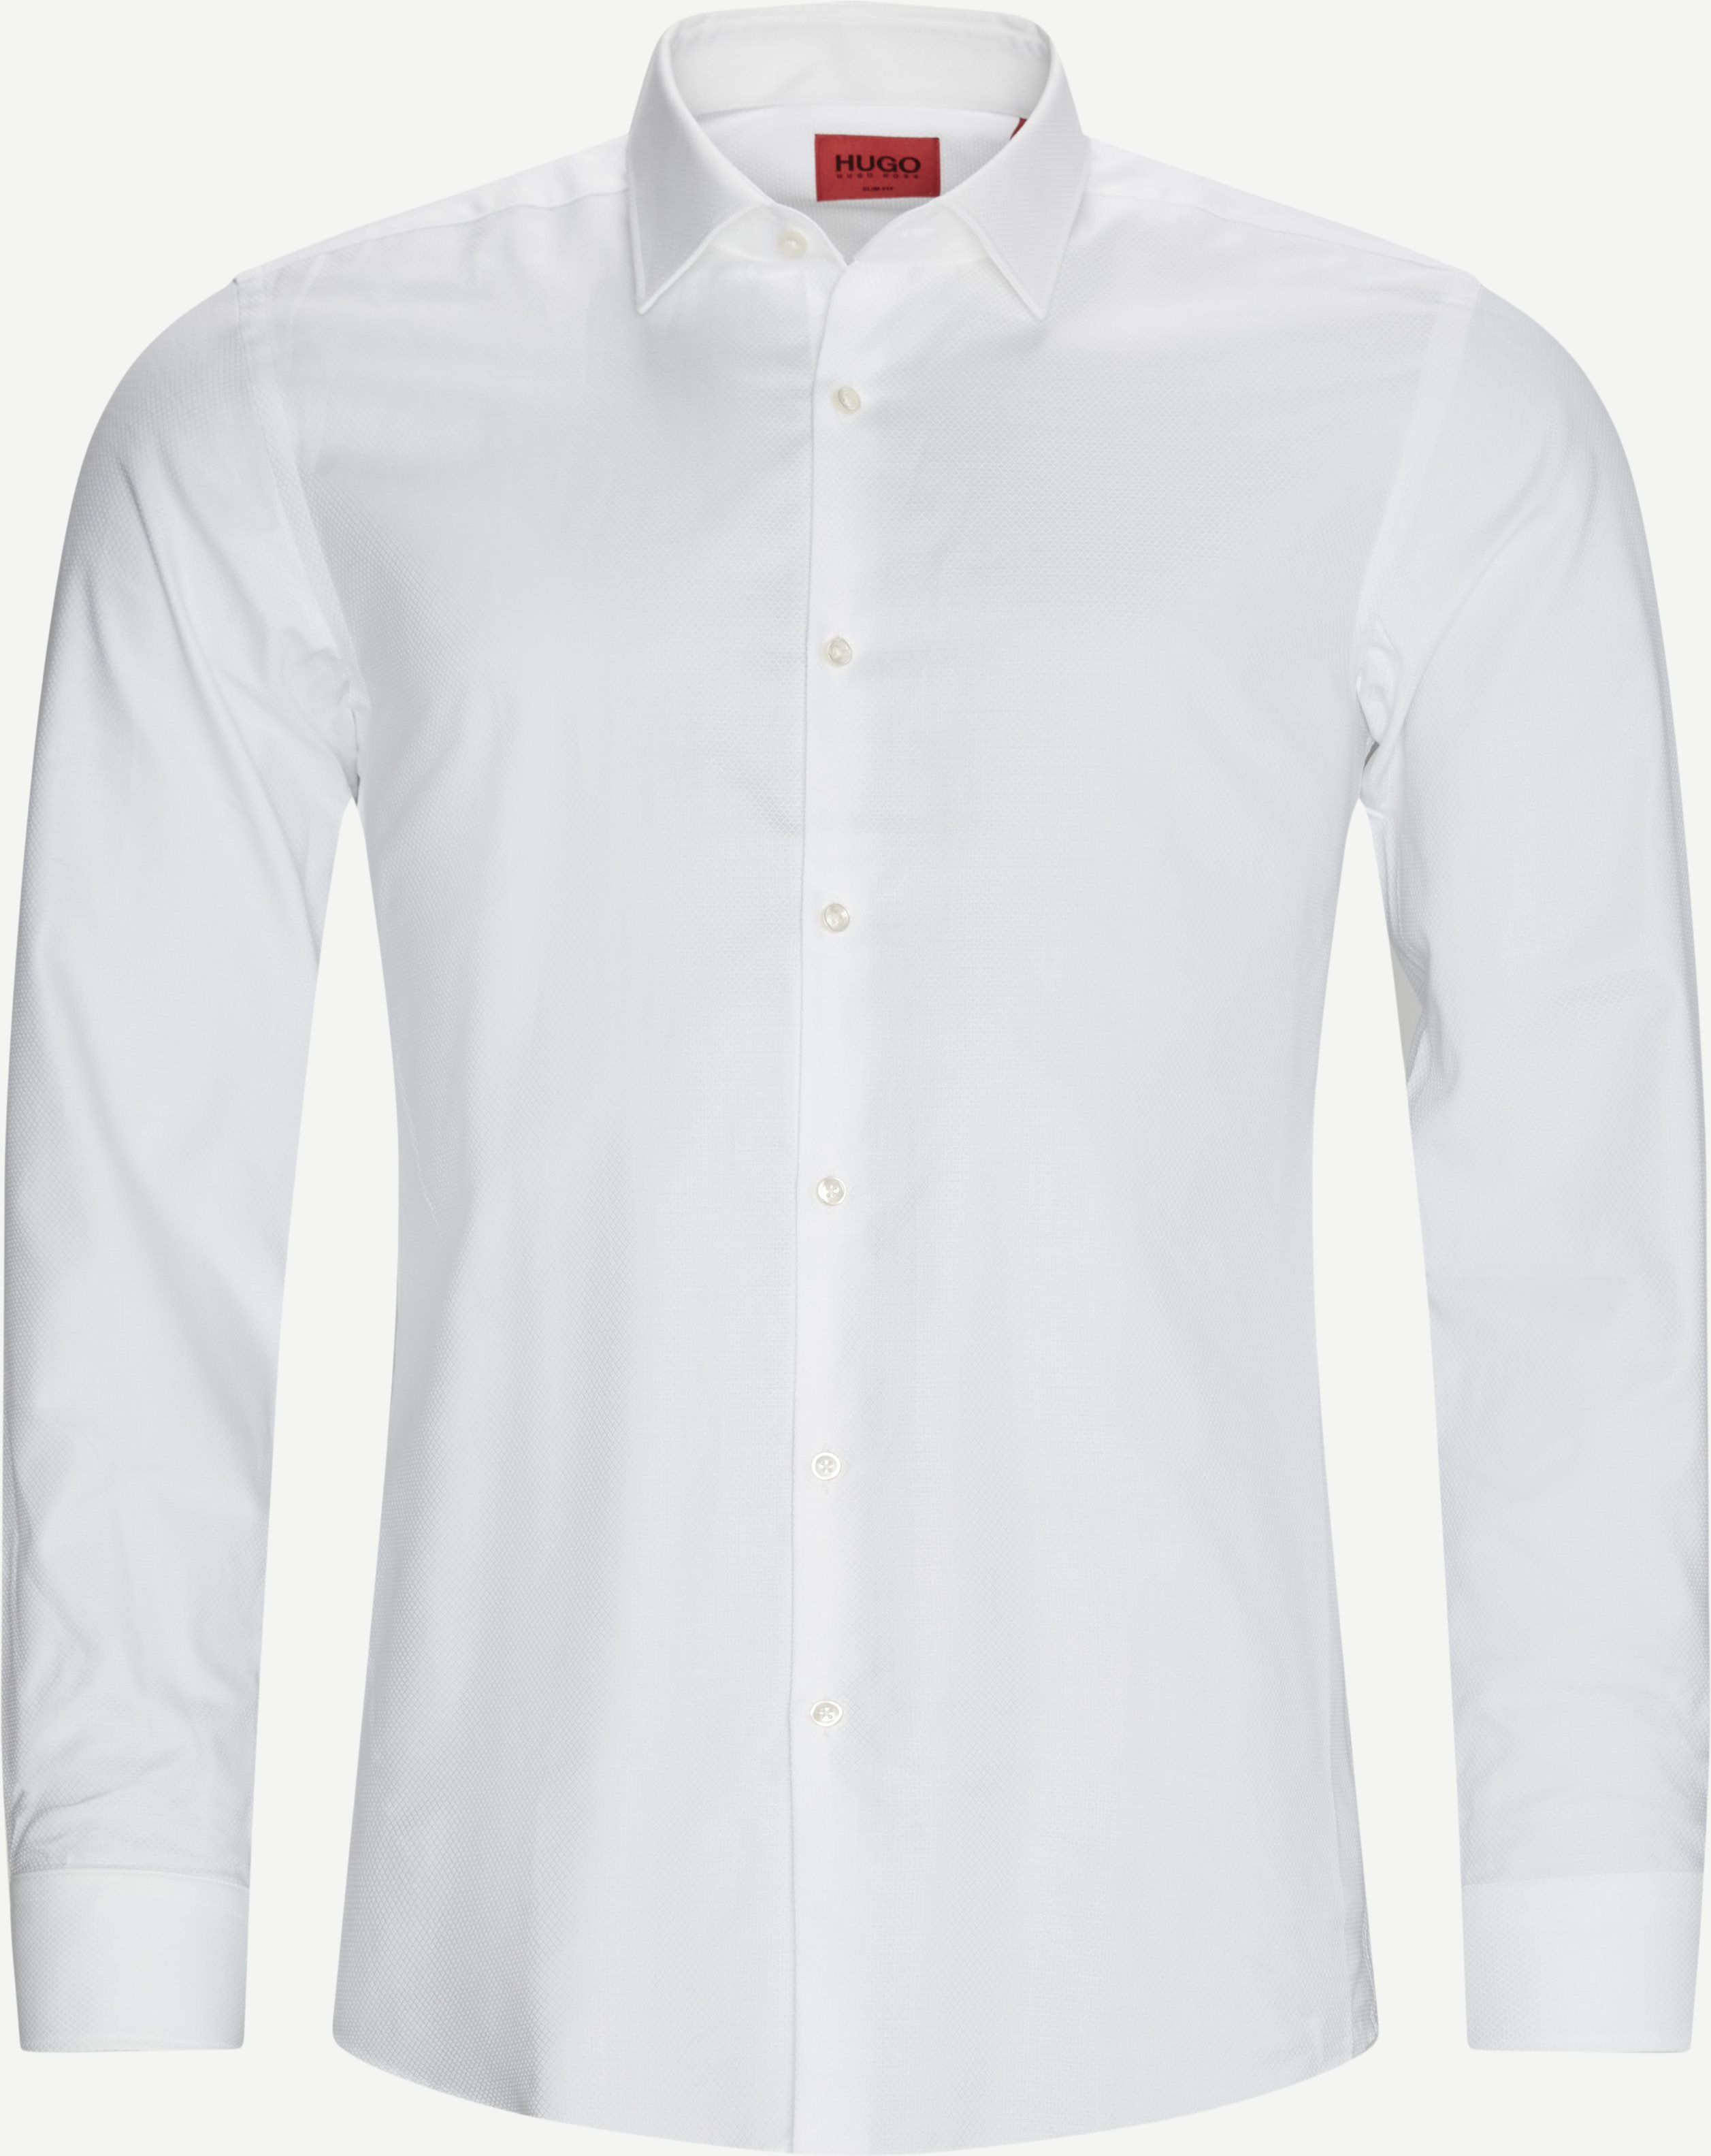 Kenno Shirt - Skjortor - Slim - Vit